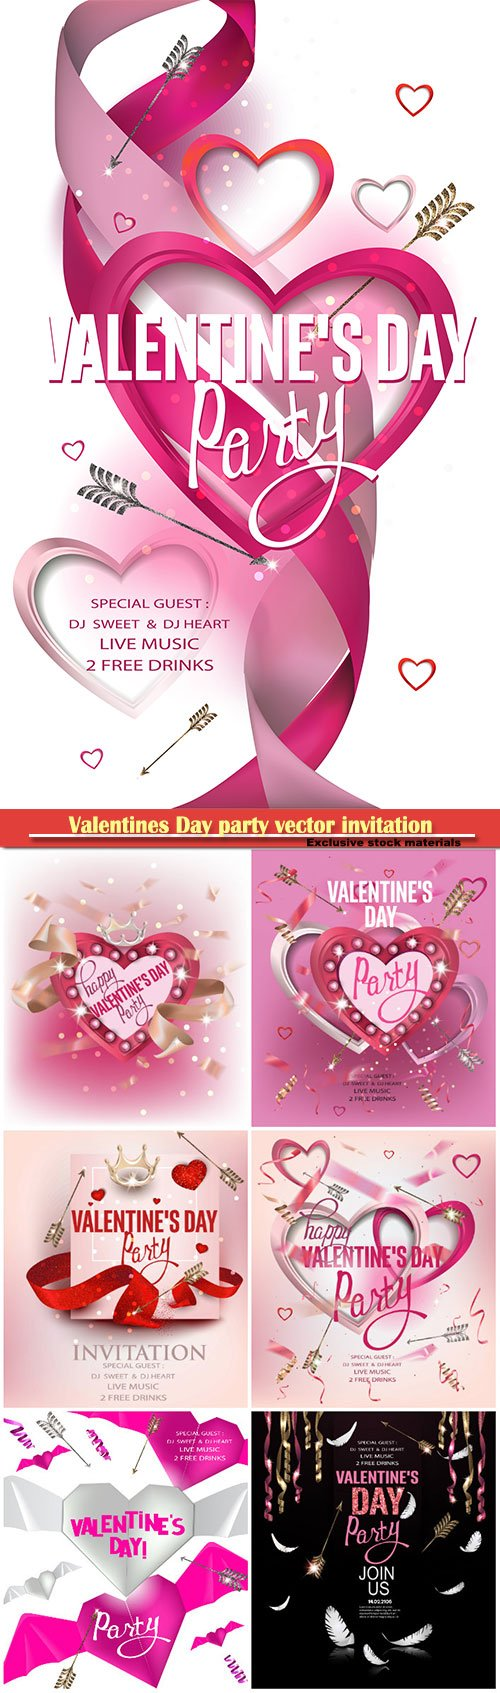 Valentines Day party vector invitation card with heart